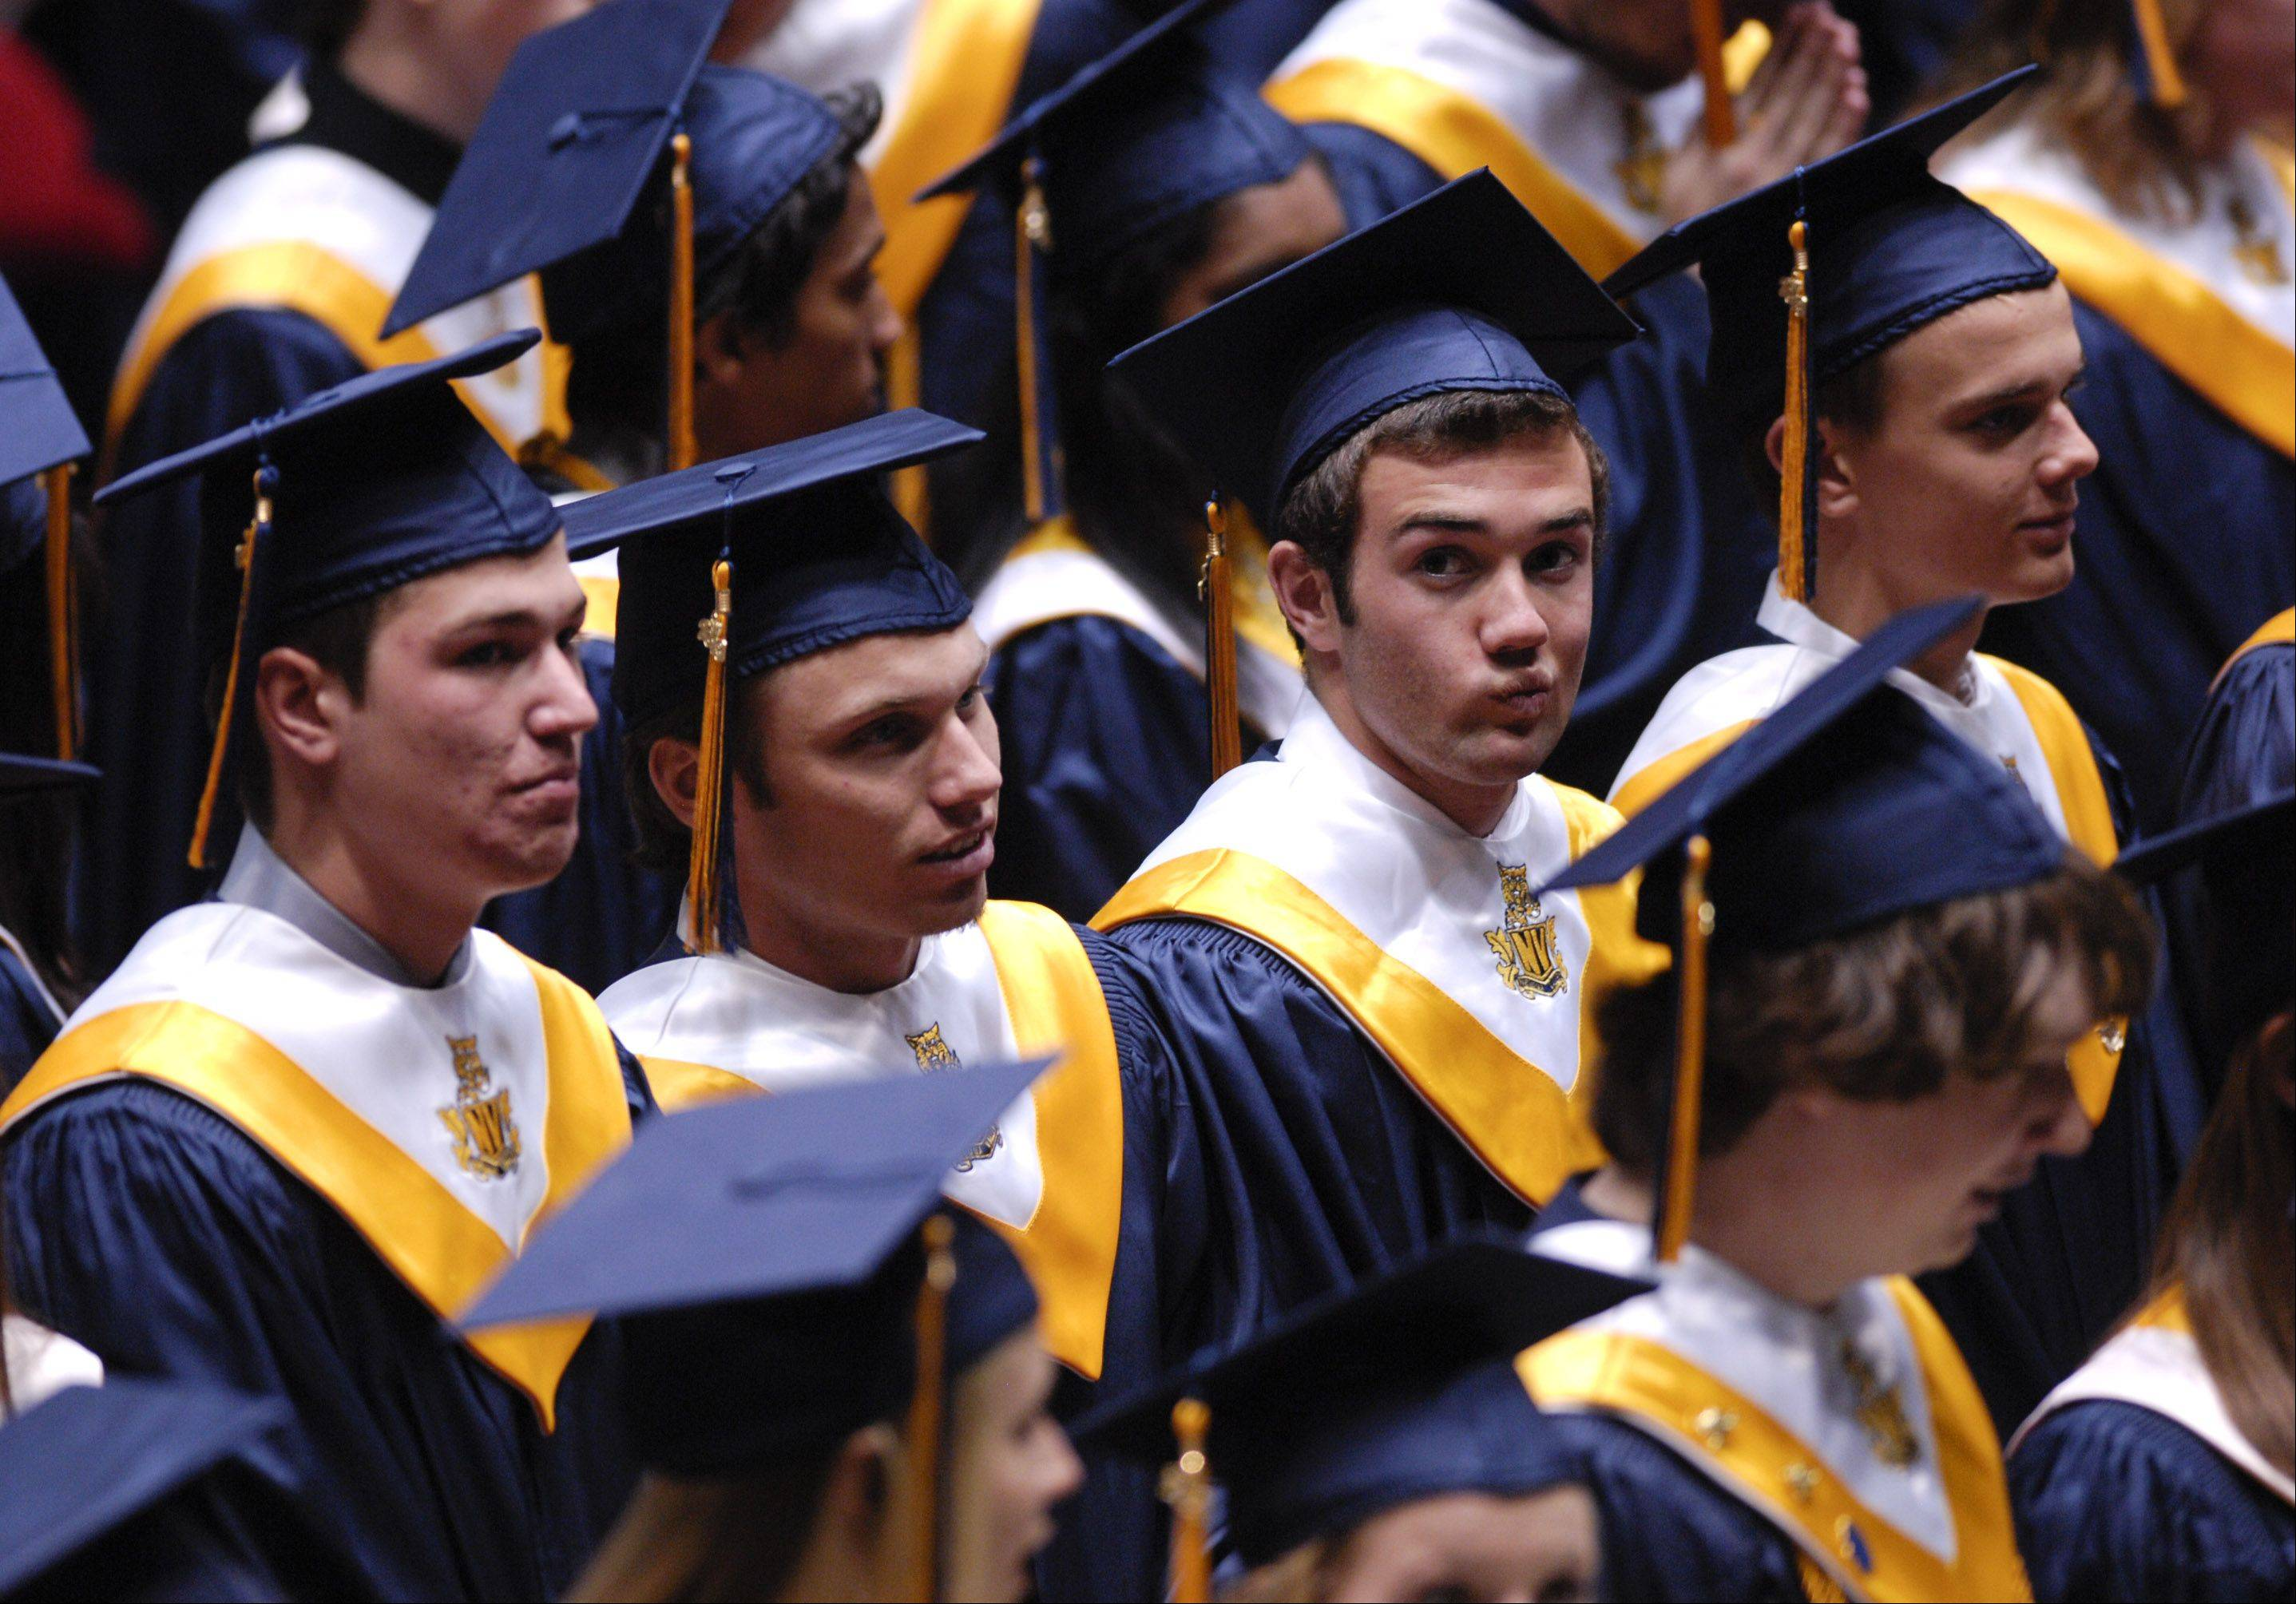 Images from the Neuqua Valley High School graduation on Sunday, May 26 at the NIU Convocation Center in DeKalb.